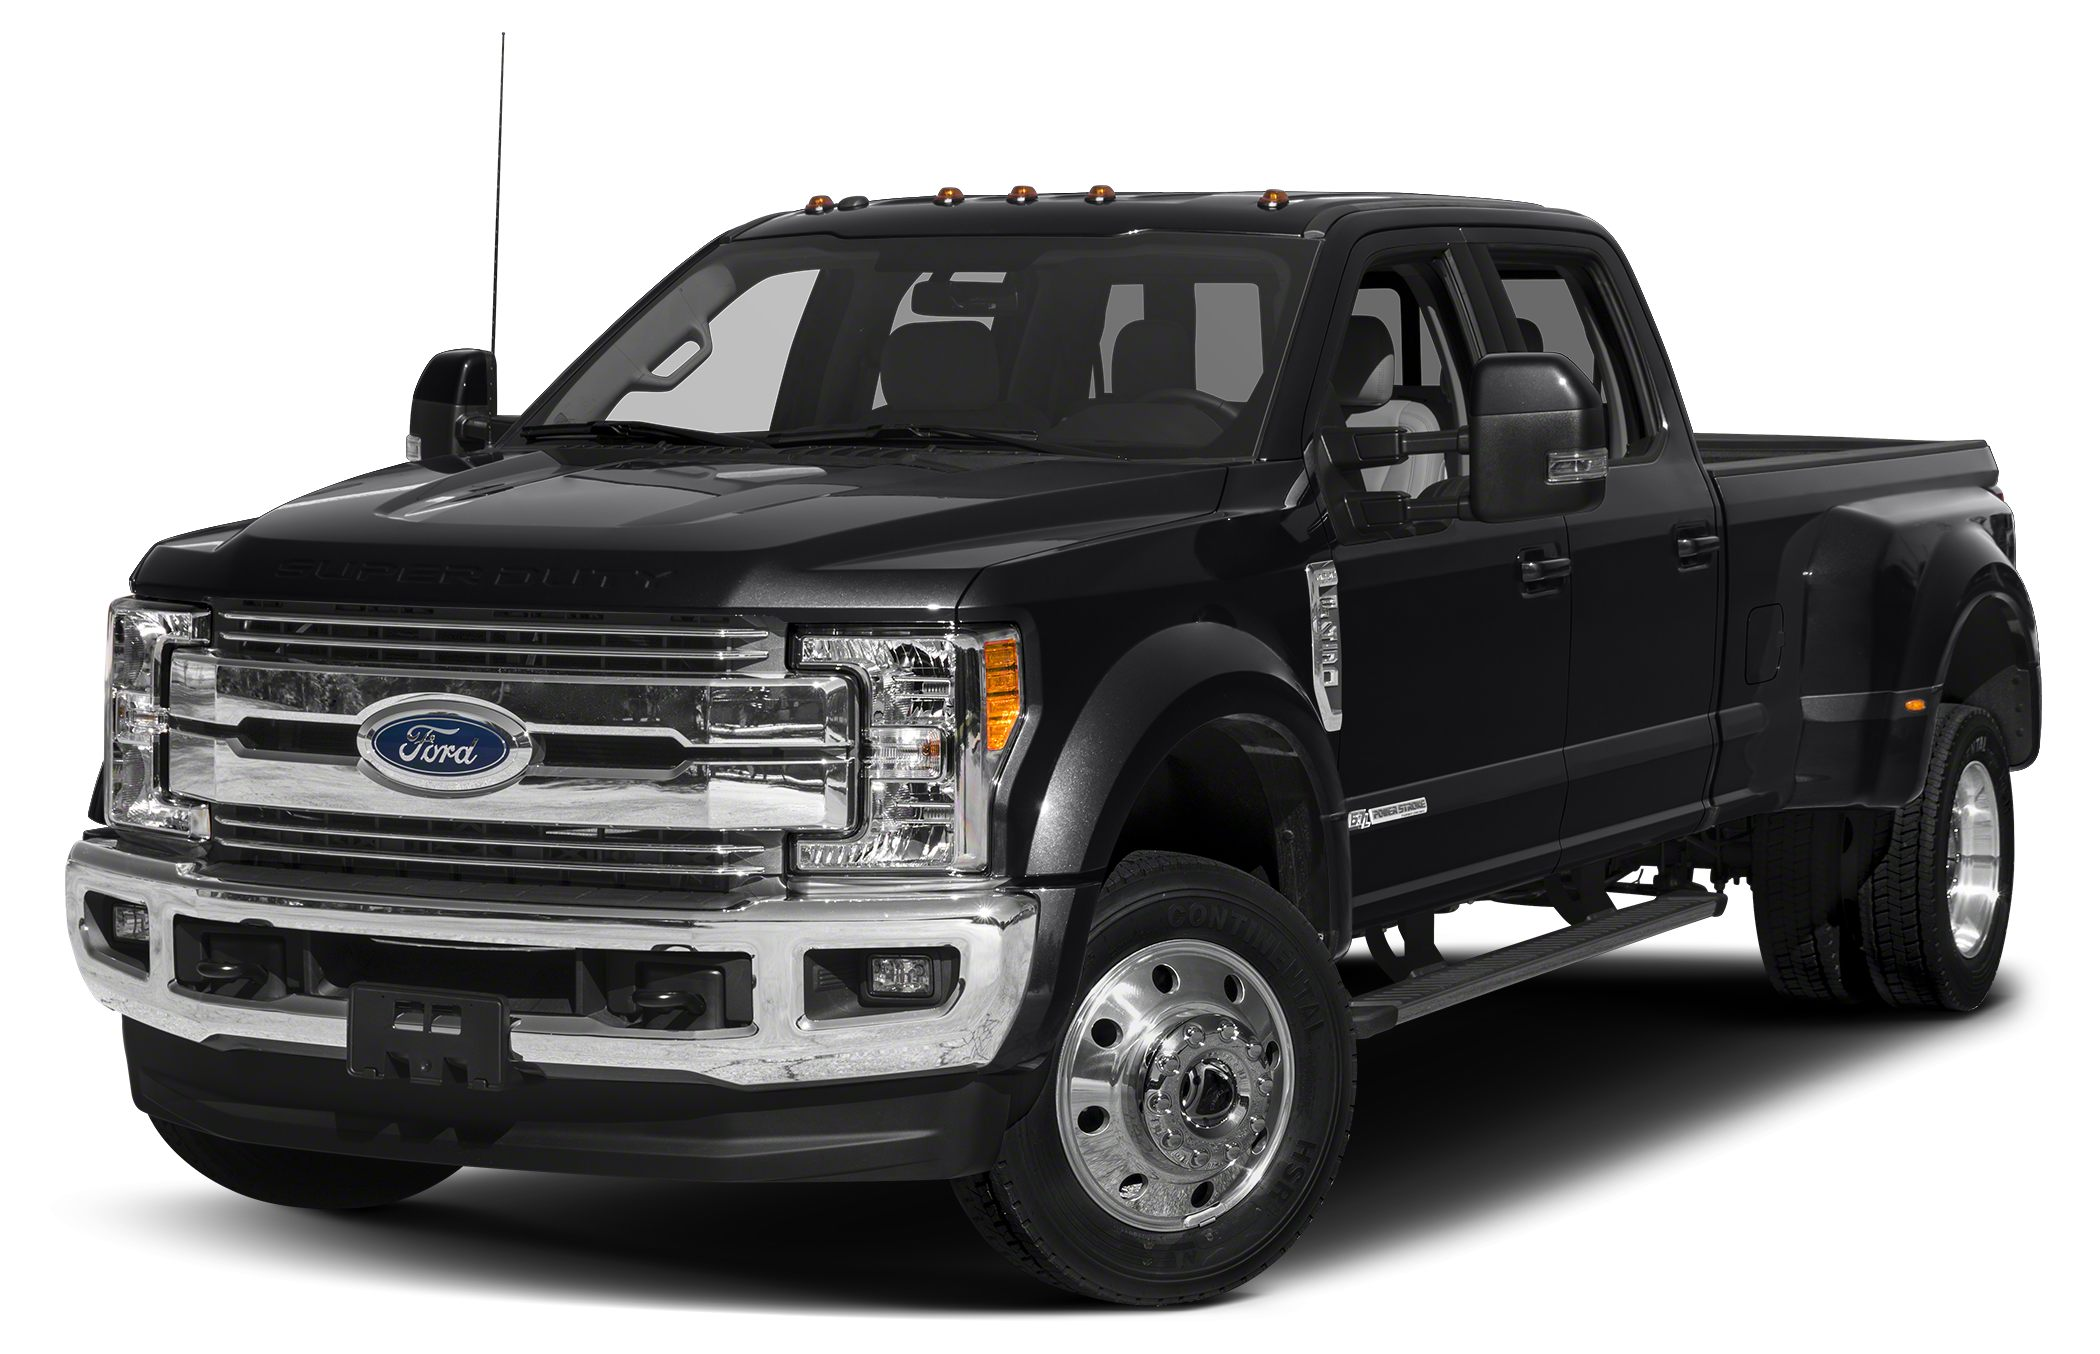 2017 Ford F-450  2 YEARS MAINTENANCE INCLUDED WITH EVERY VEHICLE PURCHASED Excellence luxury and